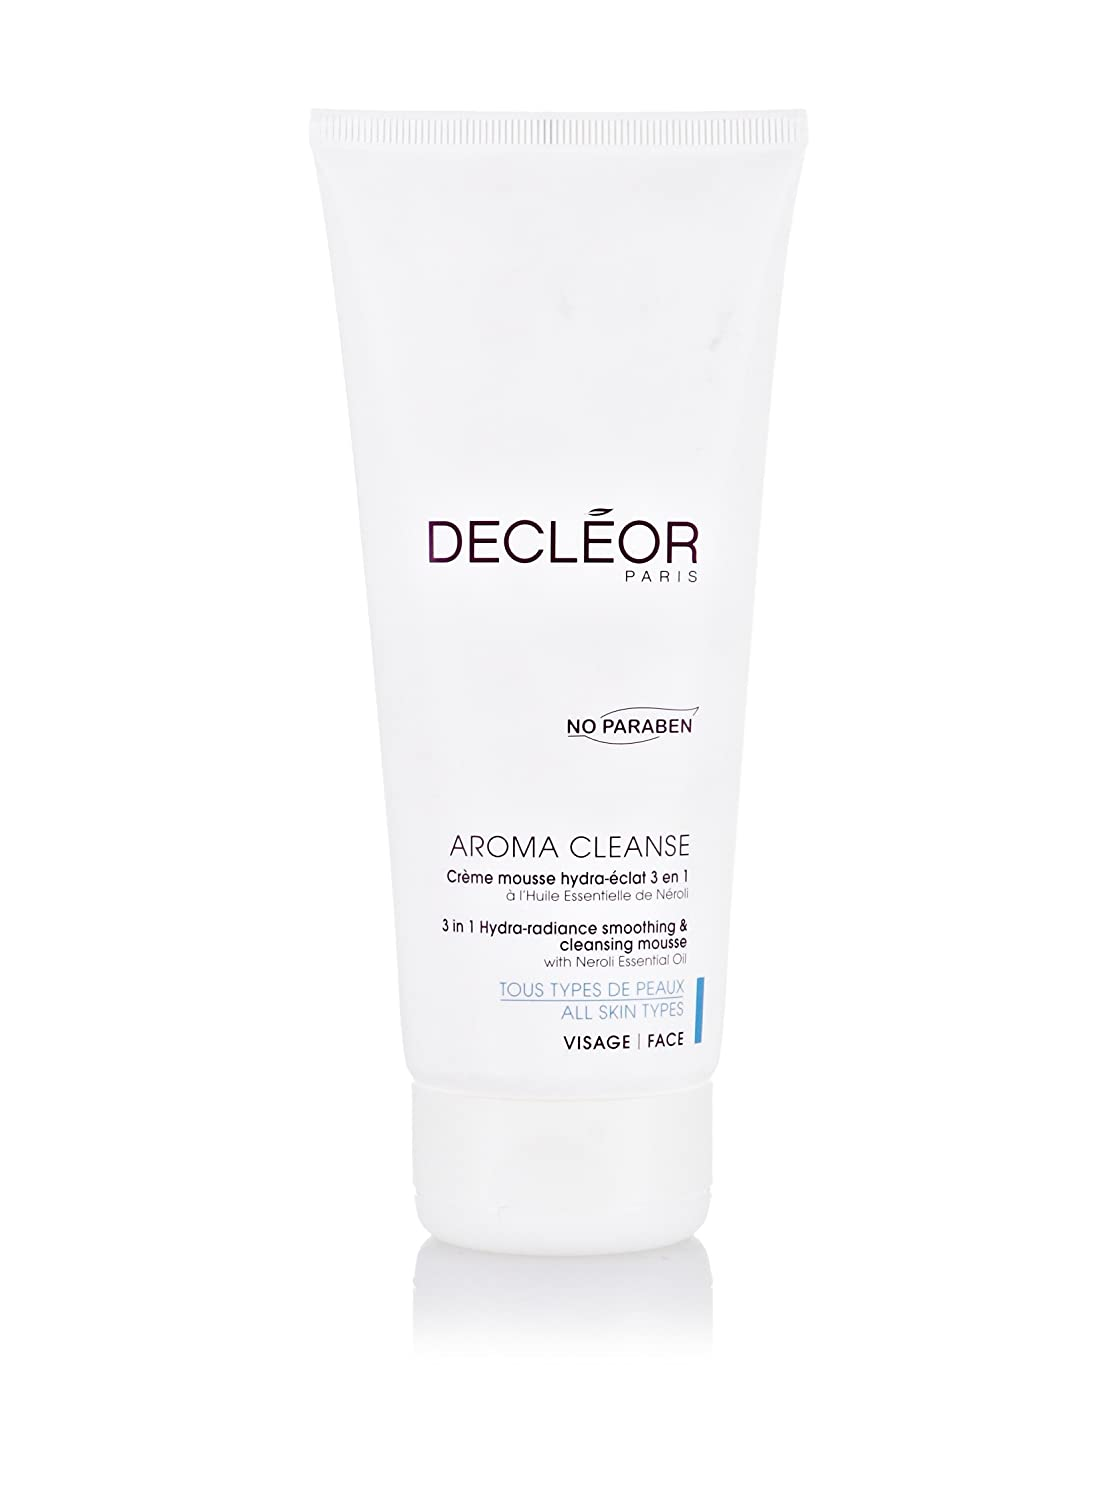 Decleor Aroma Cleanse 3-in-1 Hydra Radiance Smoothing and Cleansing Mousse with Neroli Essential Oil 200 ml DEC90136 40928